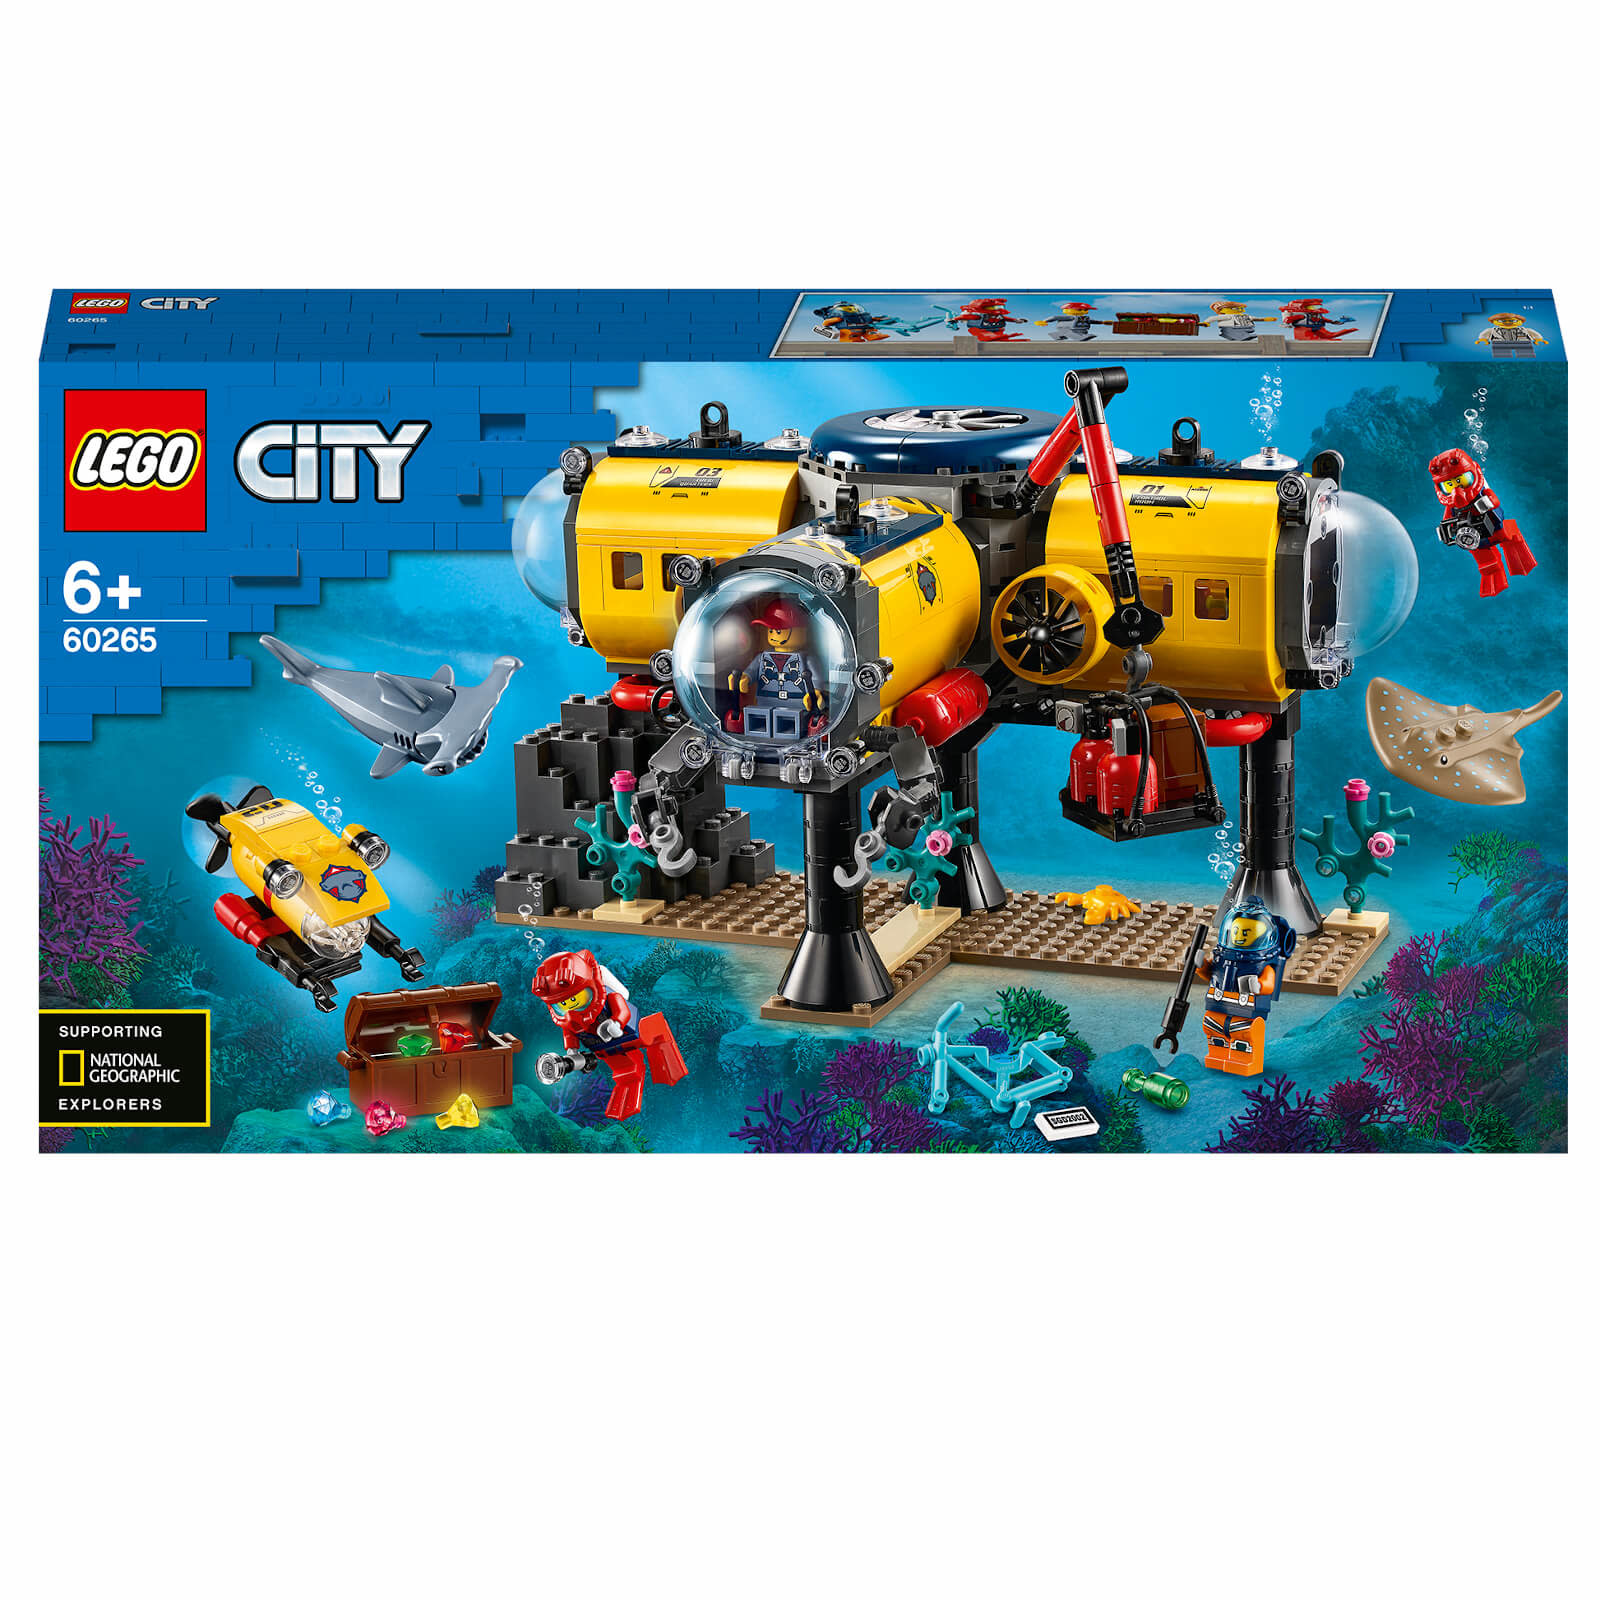 60265 Ocean Exploration Base by LEGO City